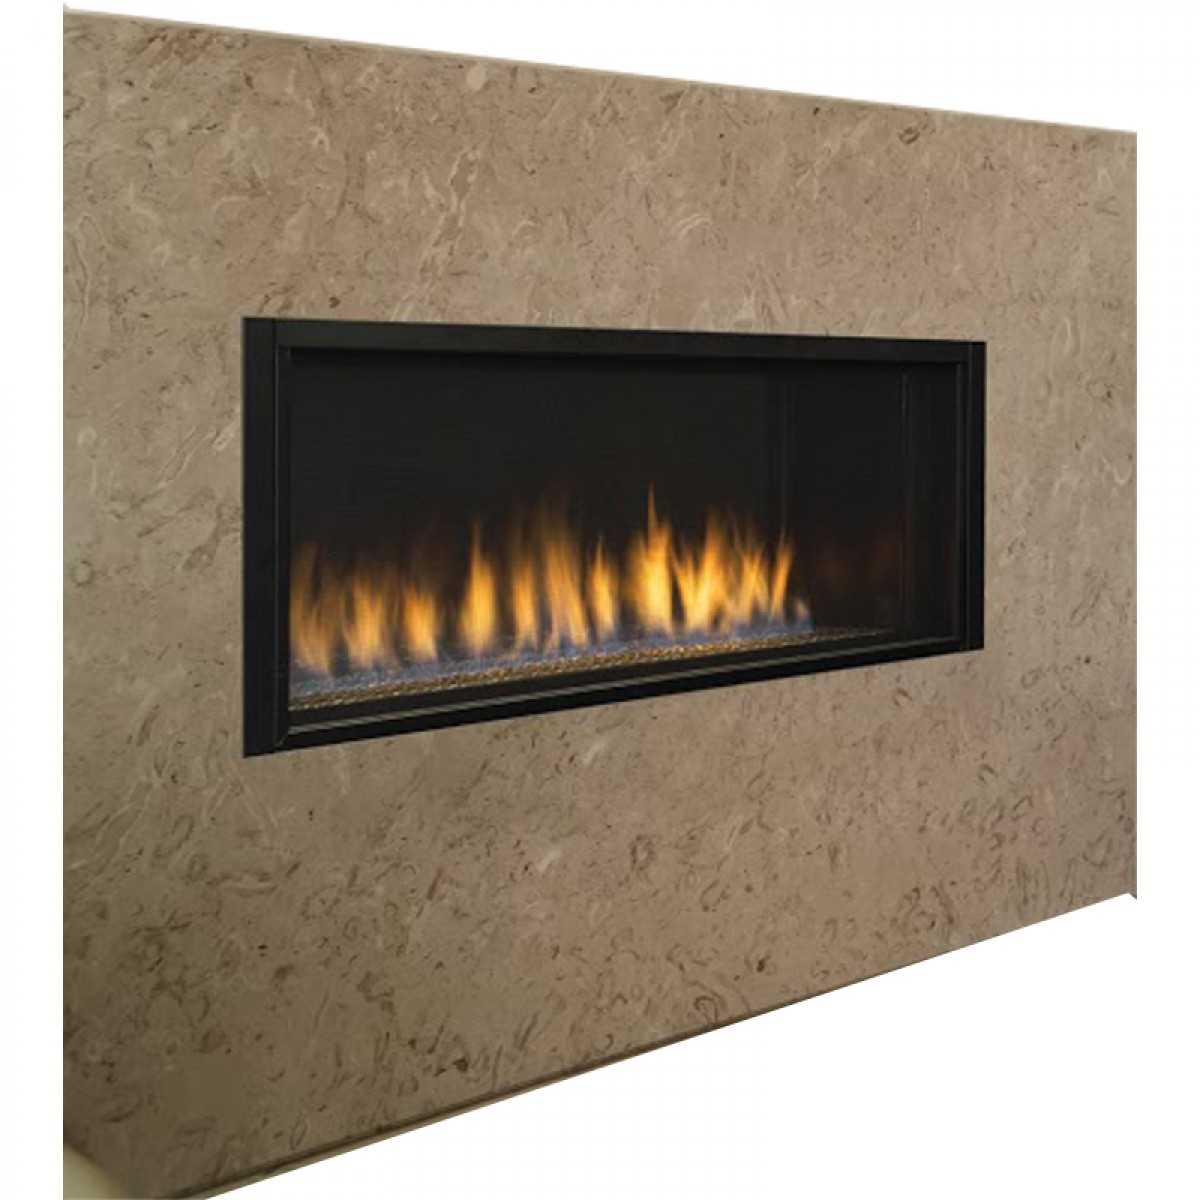 Ihp Superior Drl4543ten 43 Quot Dv Linear Ng Fireplace